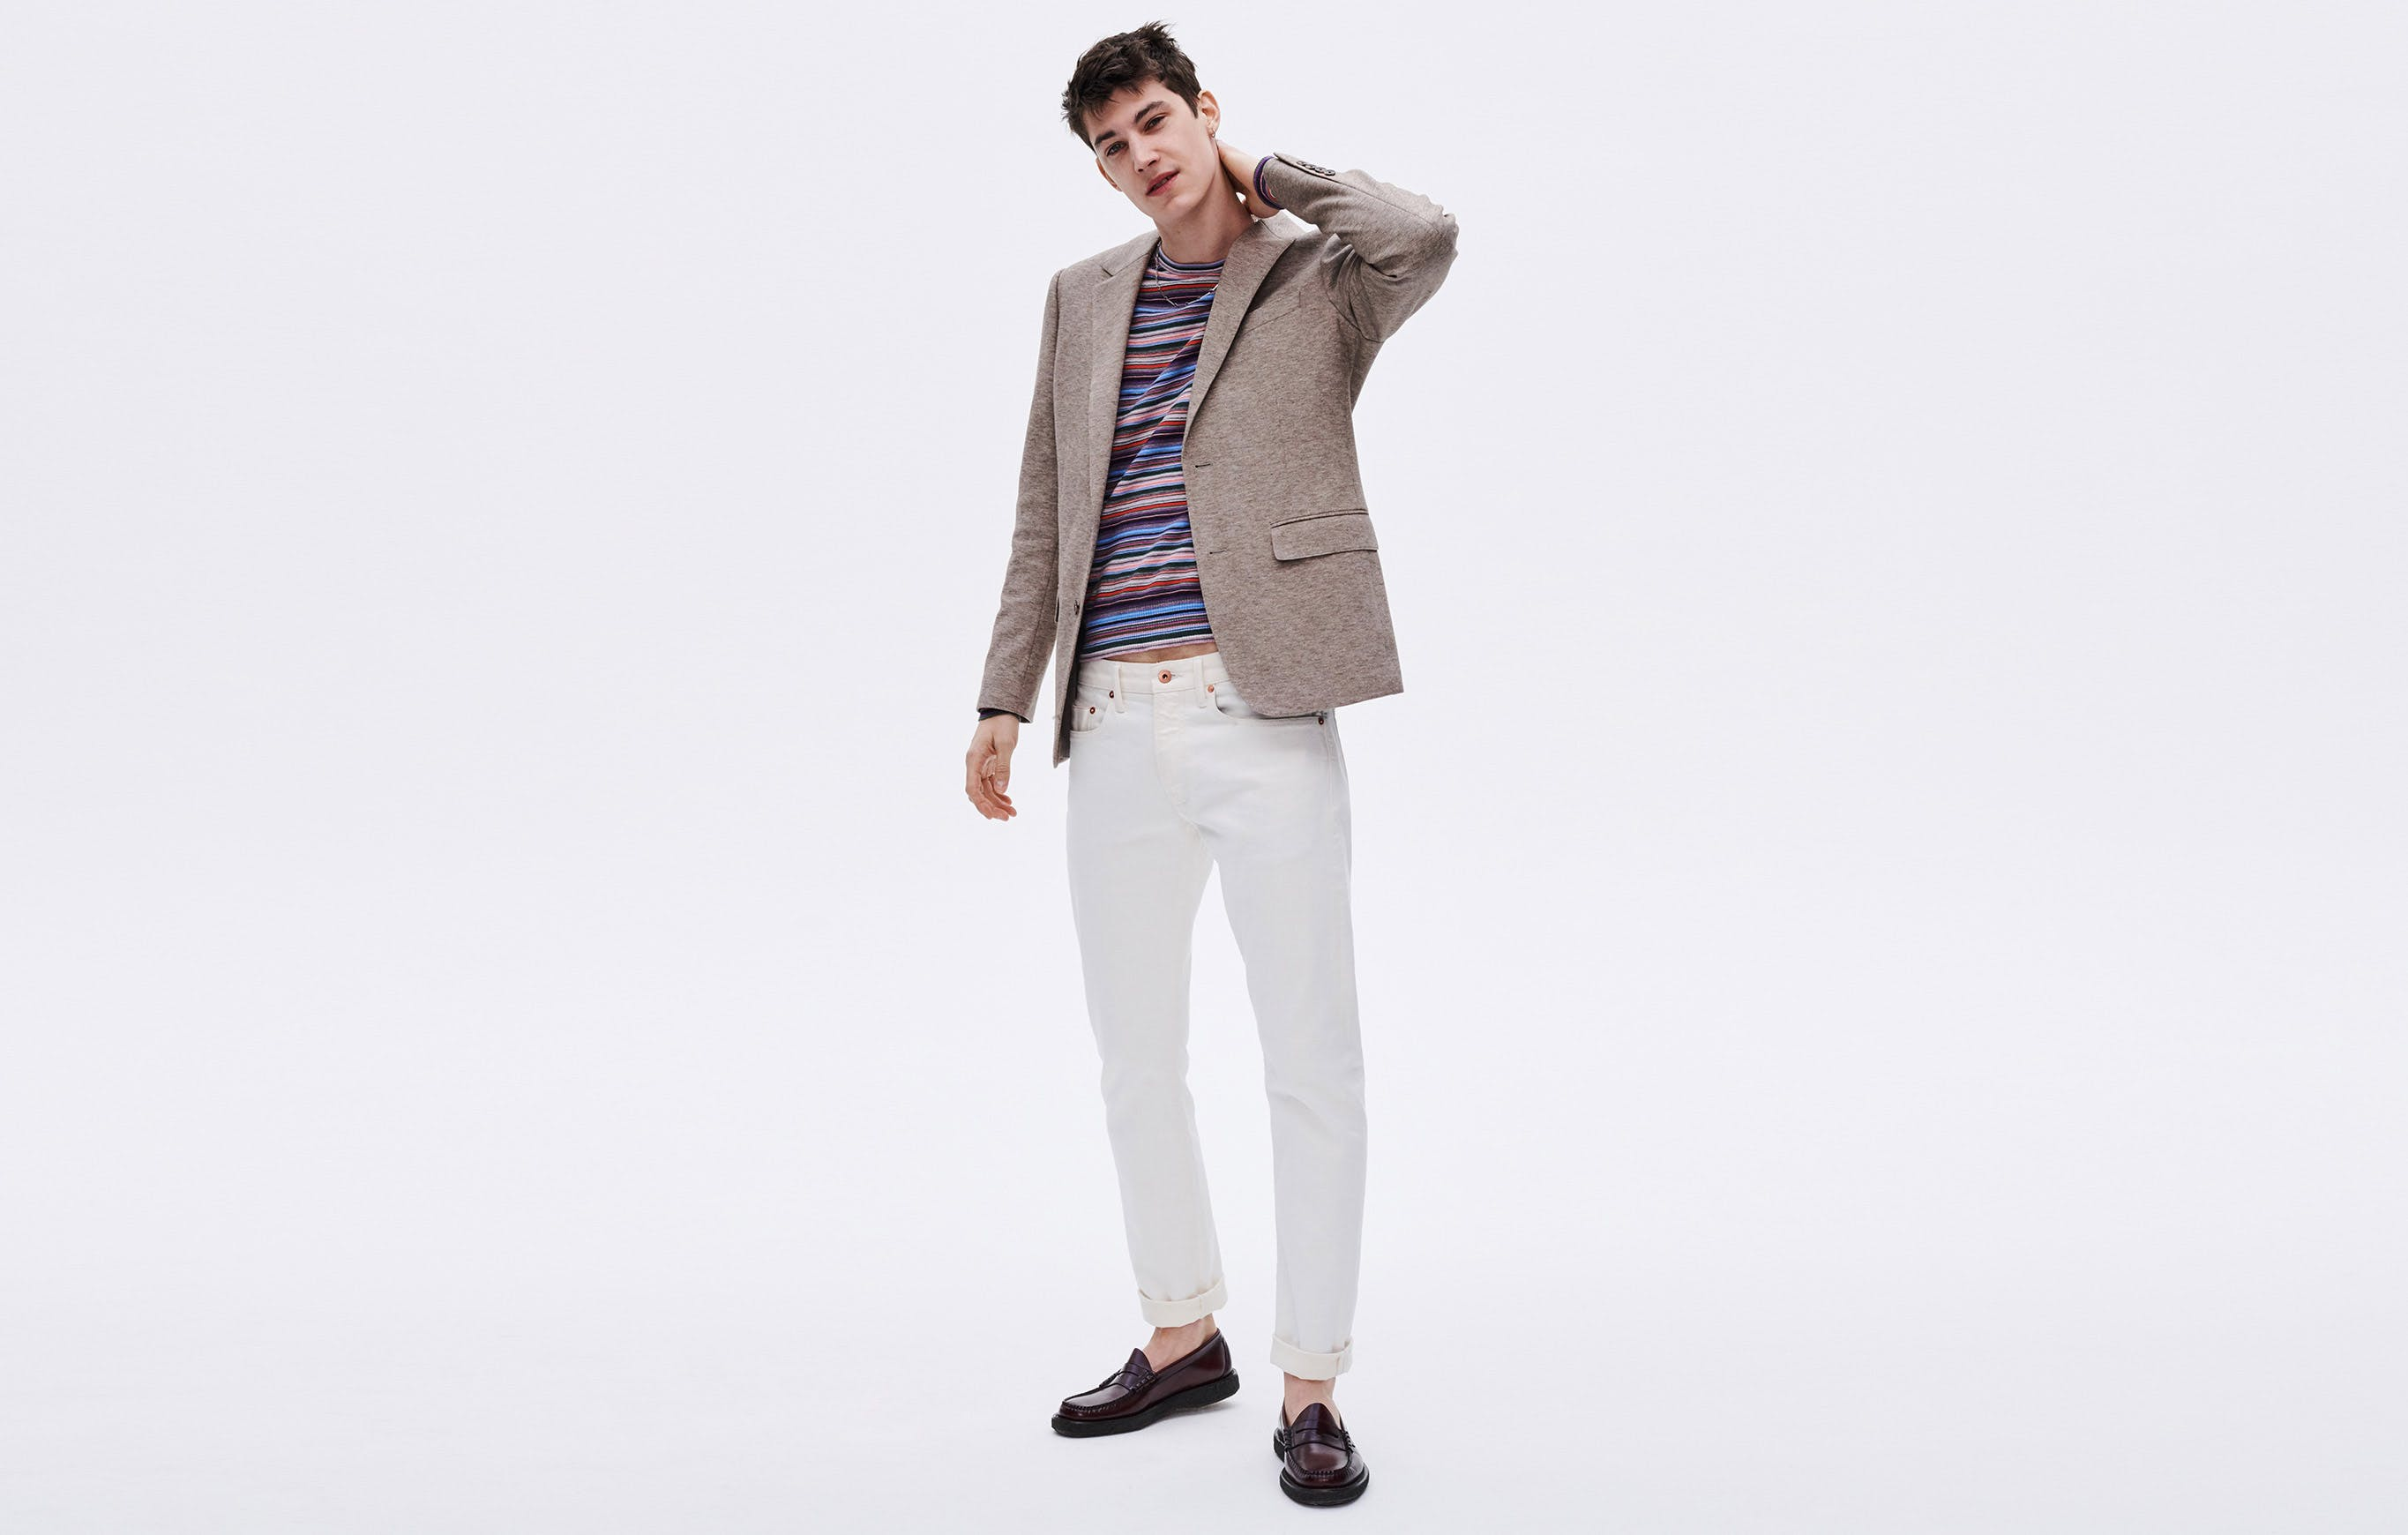 """White jeans before the """"rules"""" say to wear them? We say now's the time, so pair this selvage denim with another neutral. That'll make brighter colors stand out like a double rainbow."""